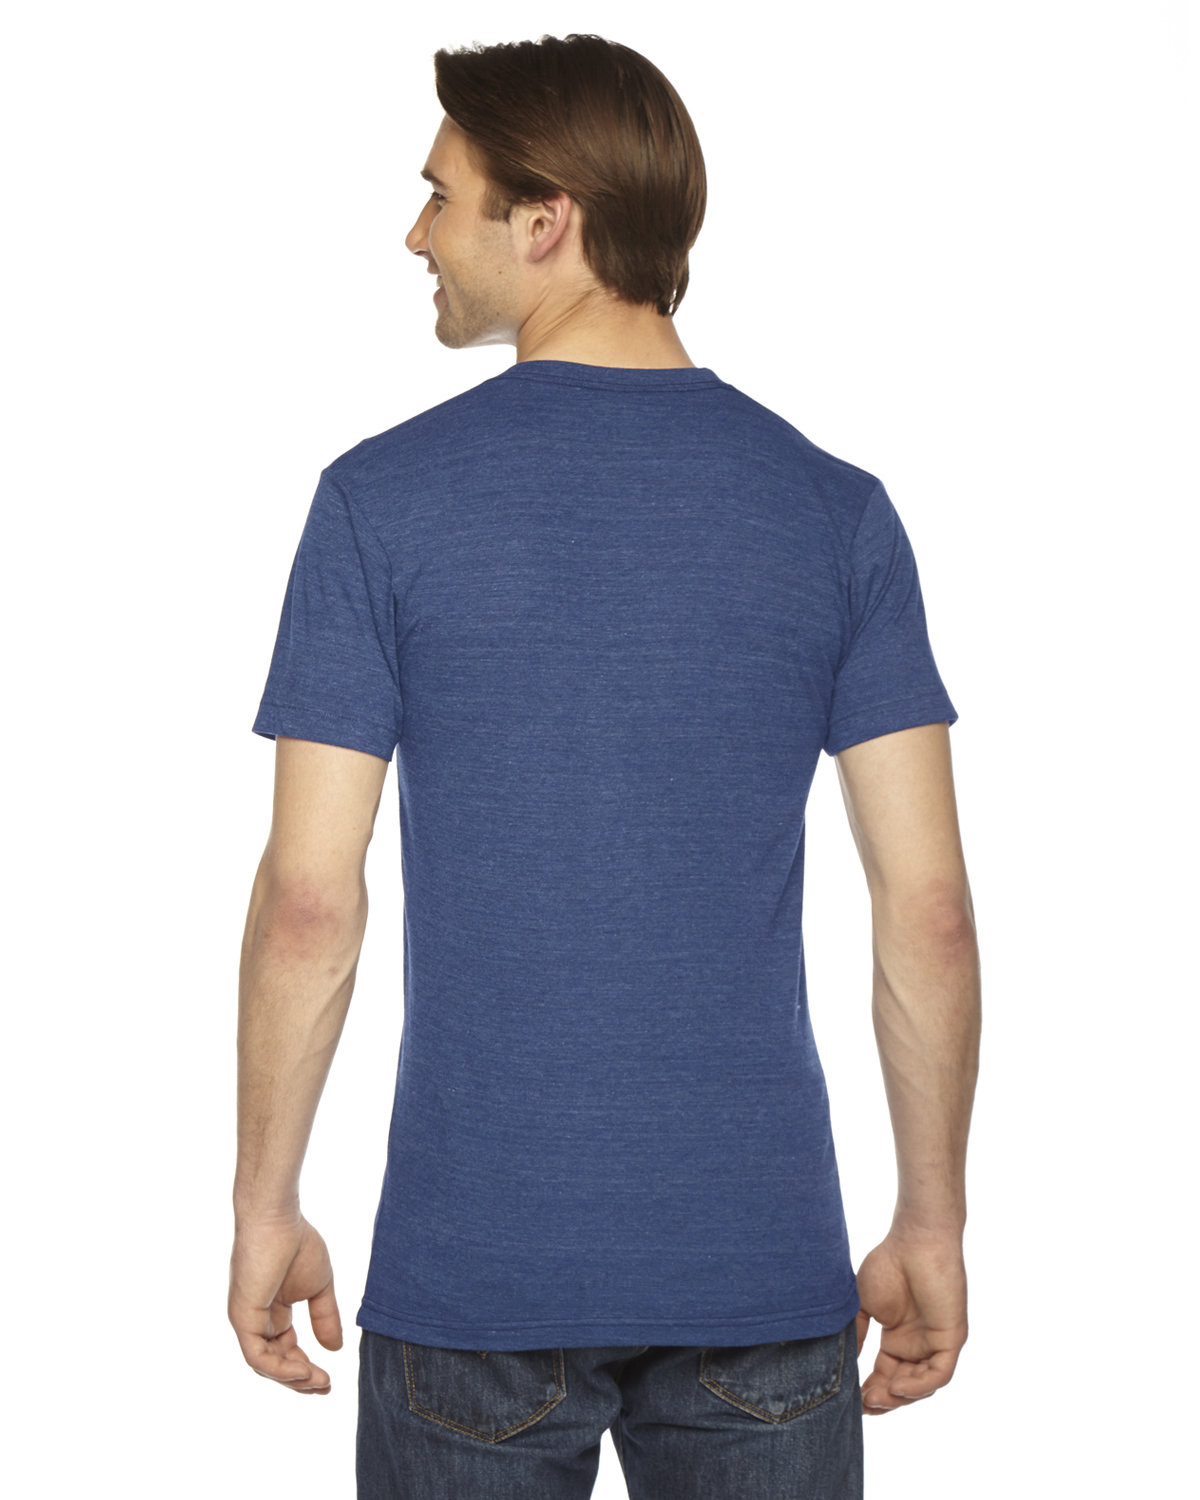 27cd7e1432f TR401 American Apparel Unisex Triblend USA Made Short-Sleeve Track T-Shirt.  Touch to zoom. Color Shown  tri indigo